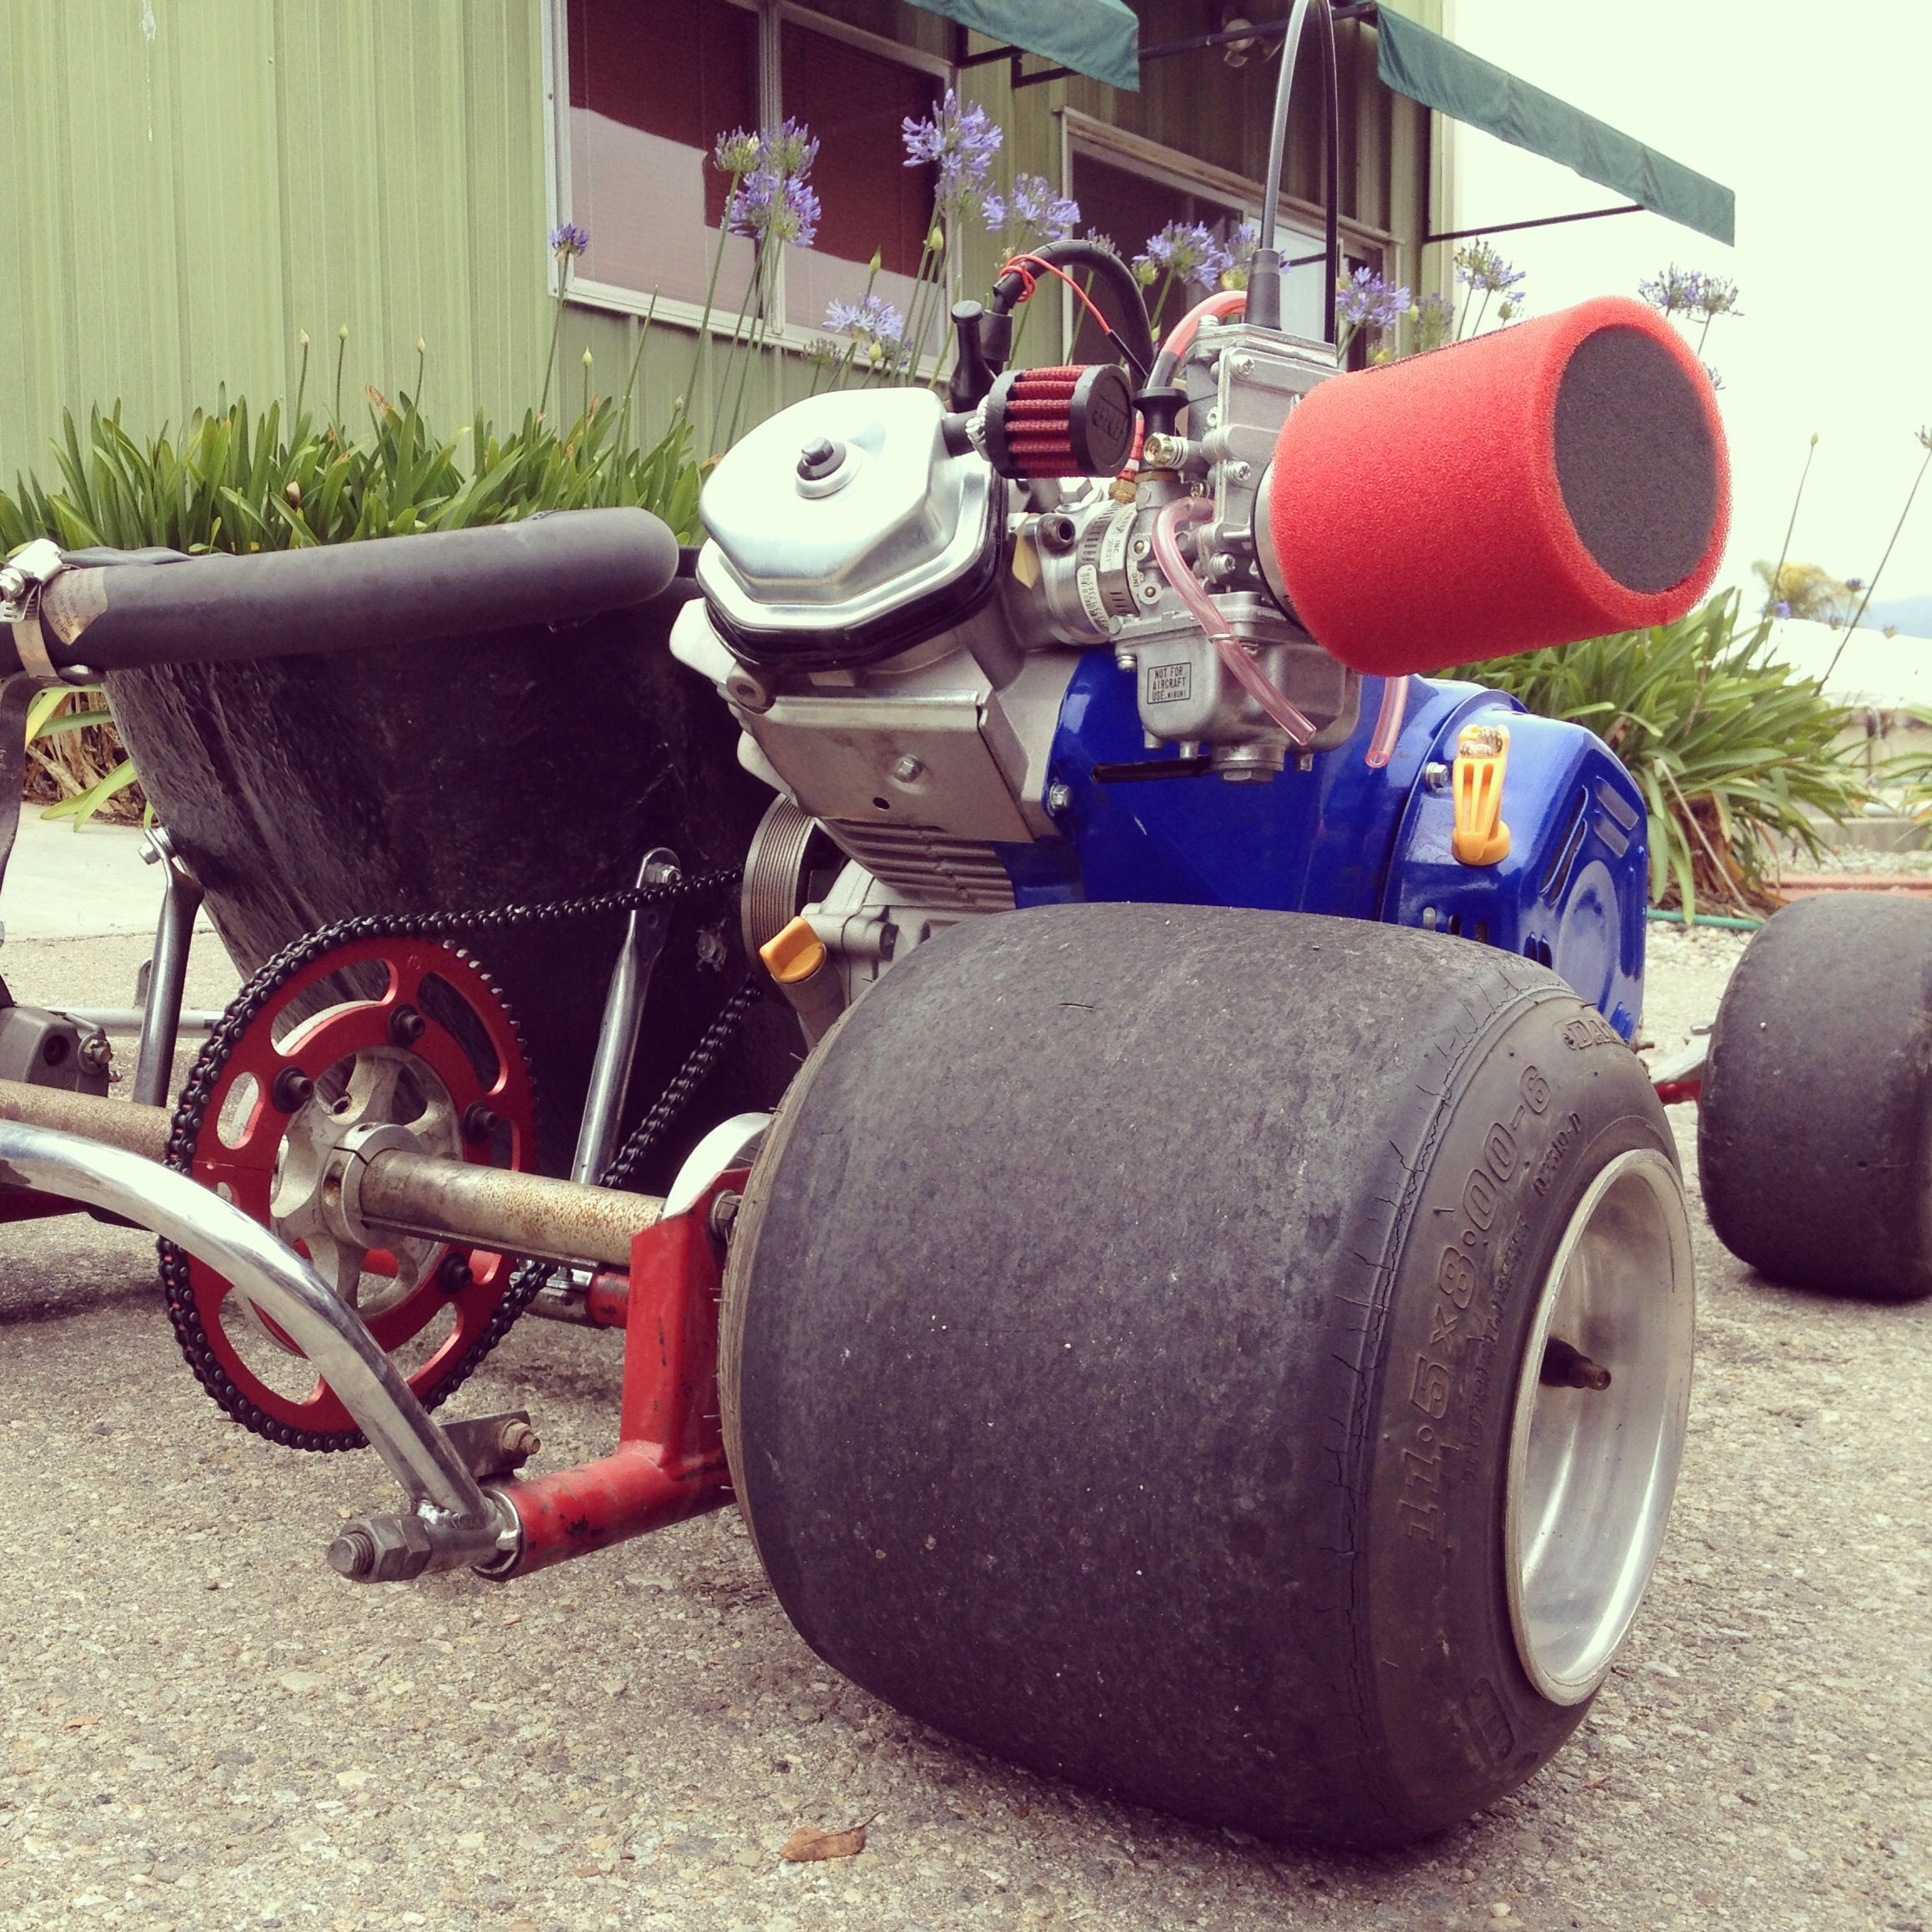 Emmick kart with a big GX390 engine  This engine has a big 360 cam